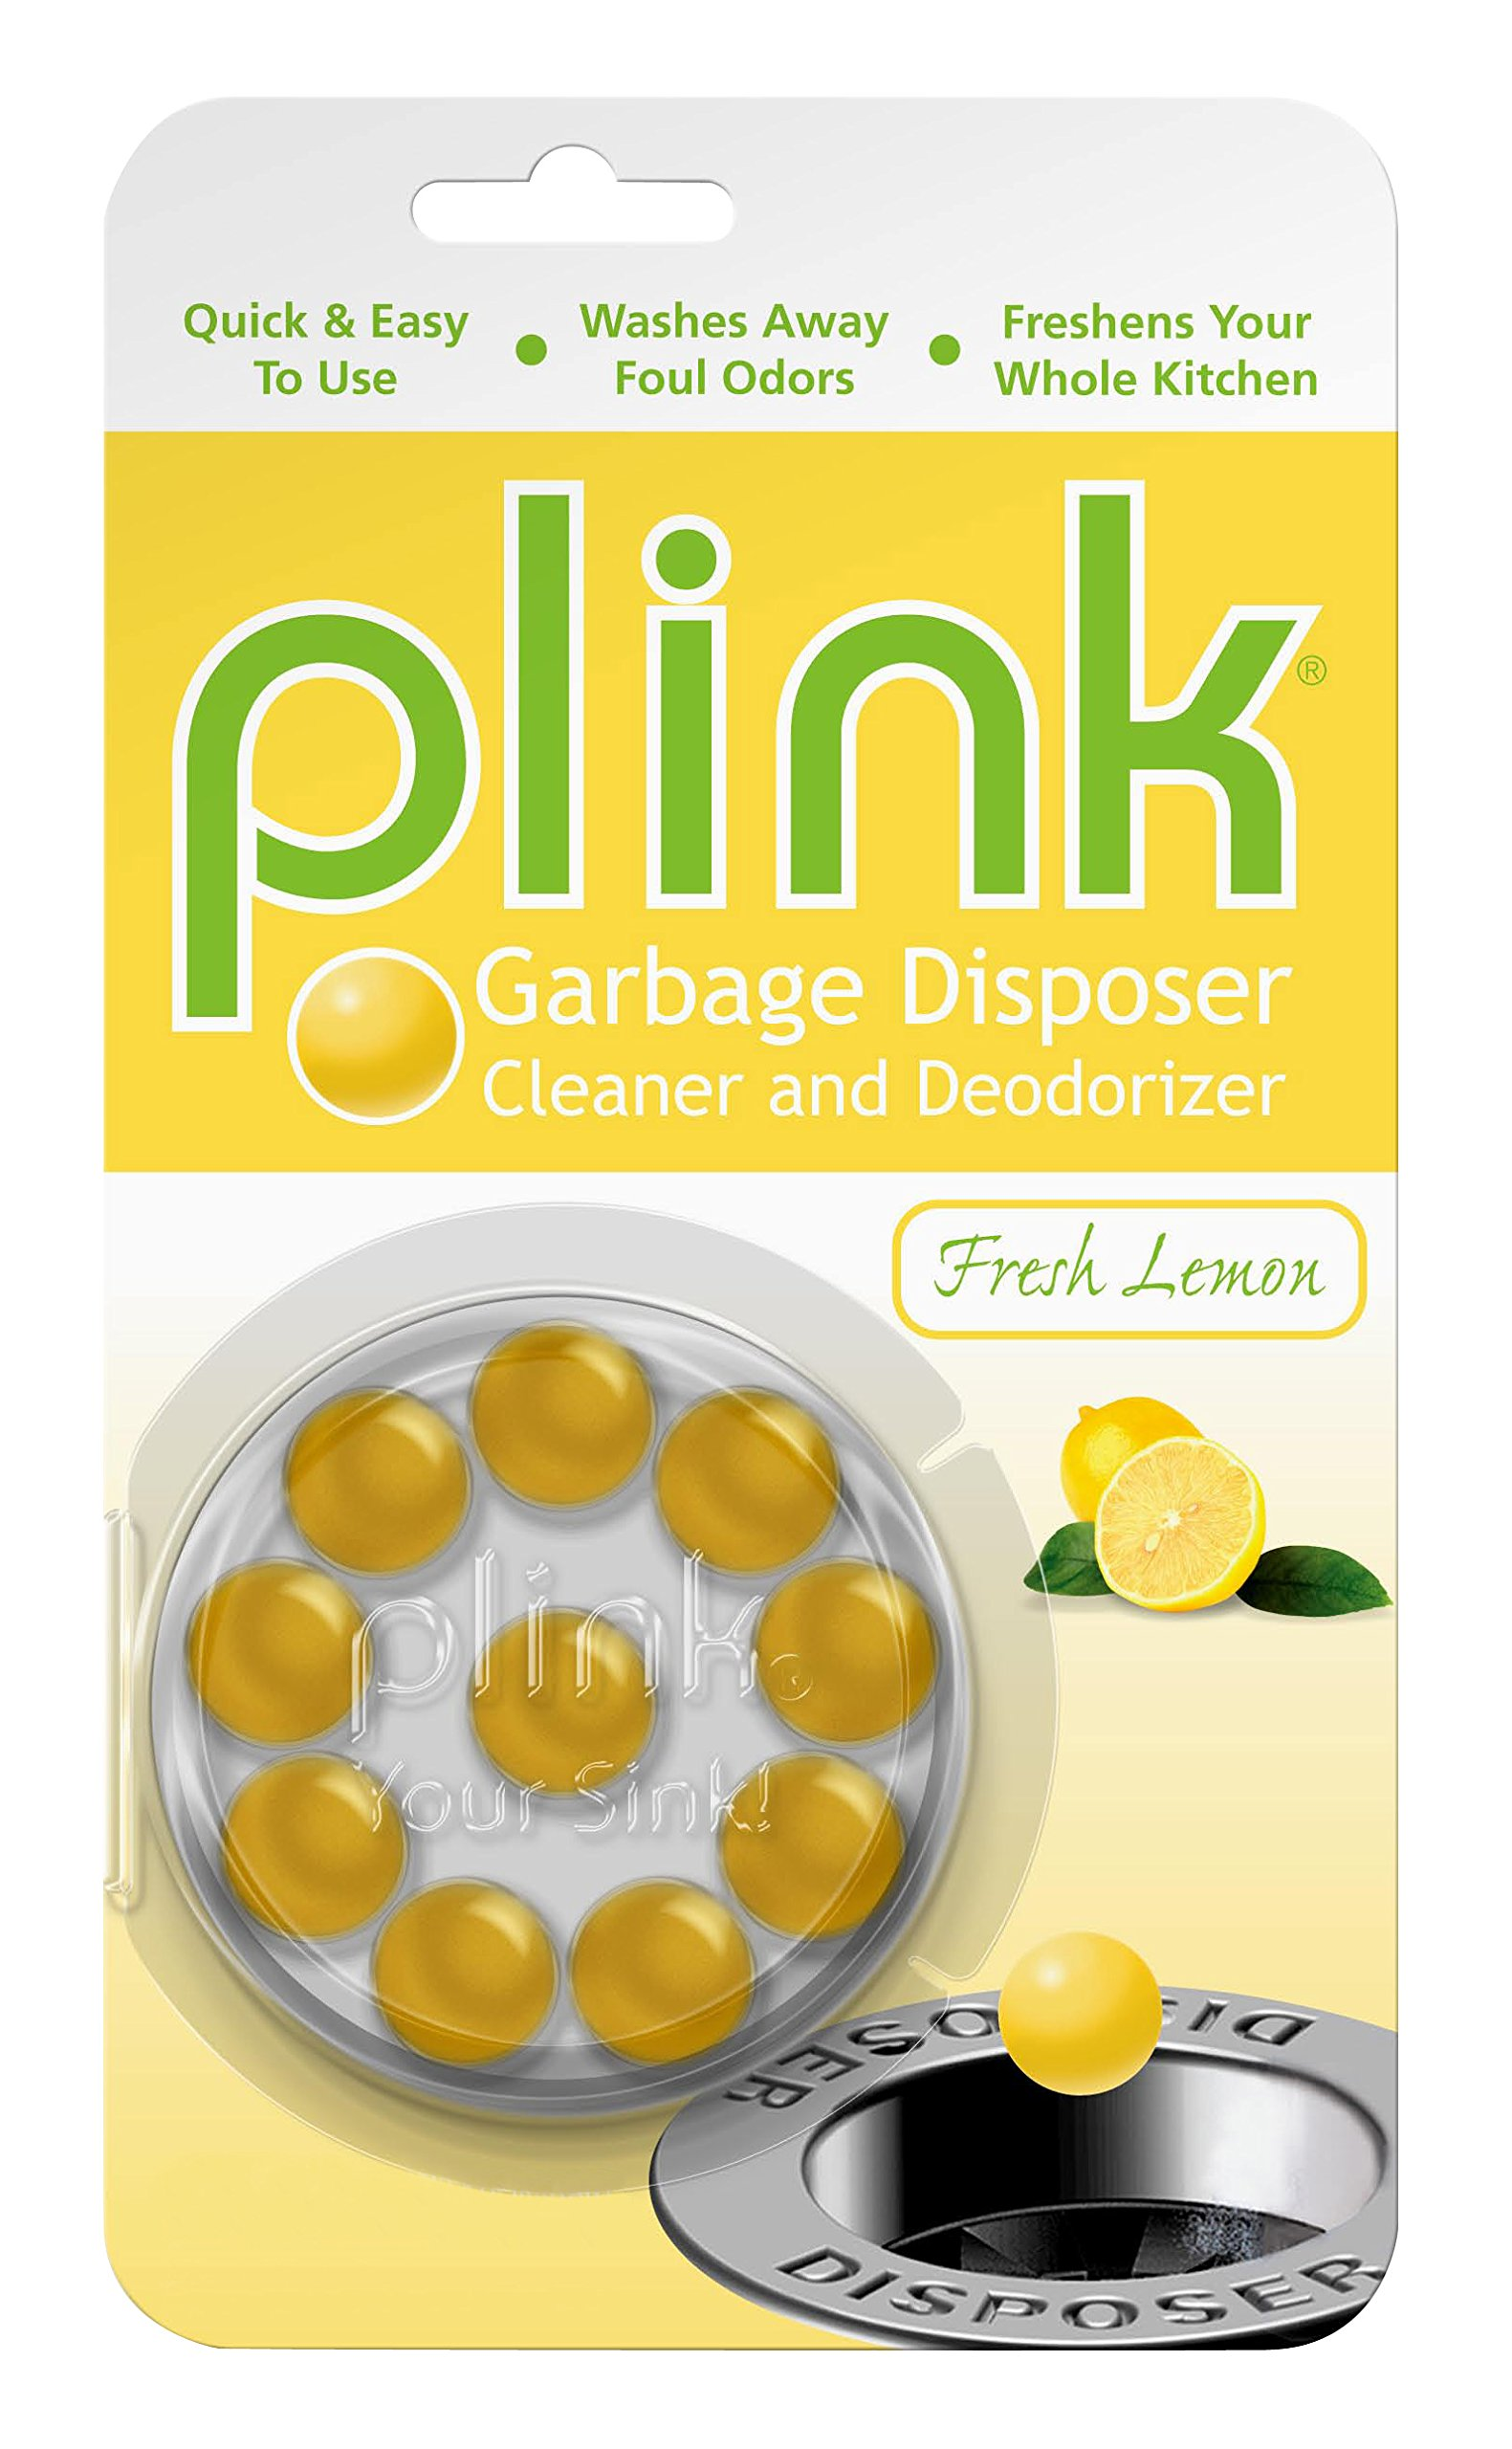 Summit Brands Plink Garbage Disposal Cleaner and Deodorizer, Multi Scent Pack of 3, Value Pack, 30 Cleanings by Summit Brands (Image #3)